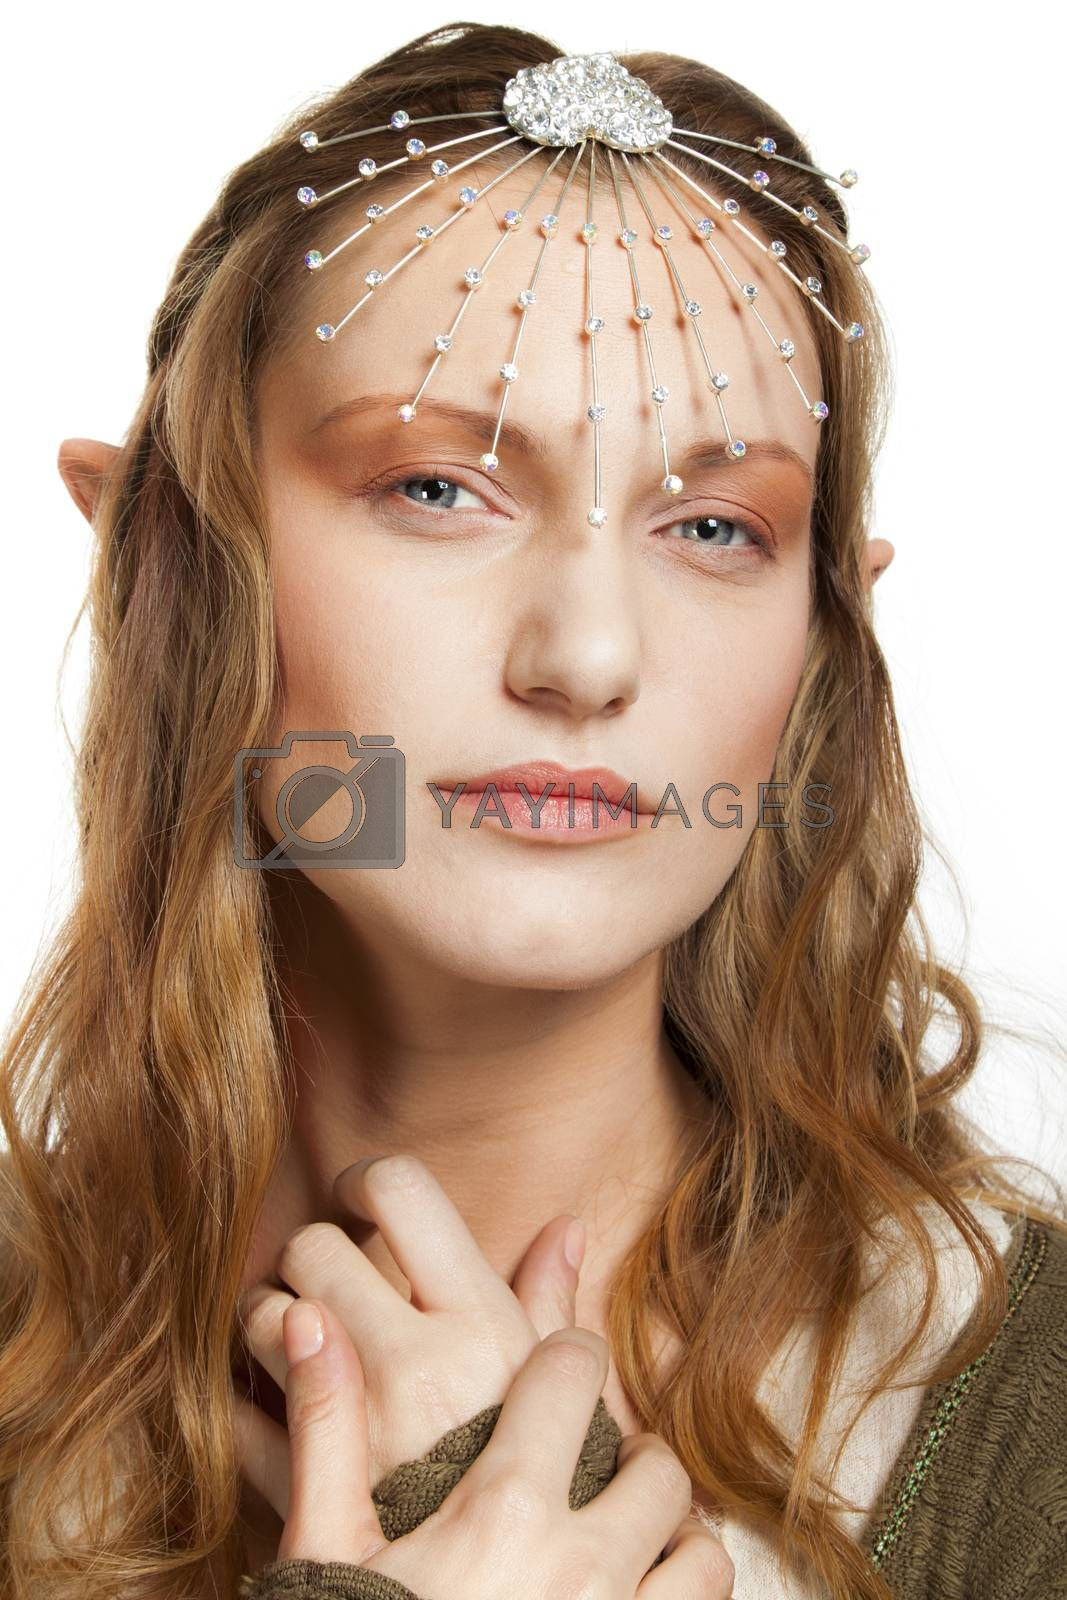 A portrait of a beautiful woman with tiara and elfs ears, looking at camera.